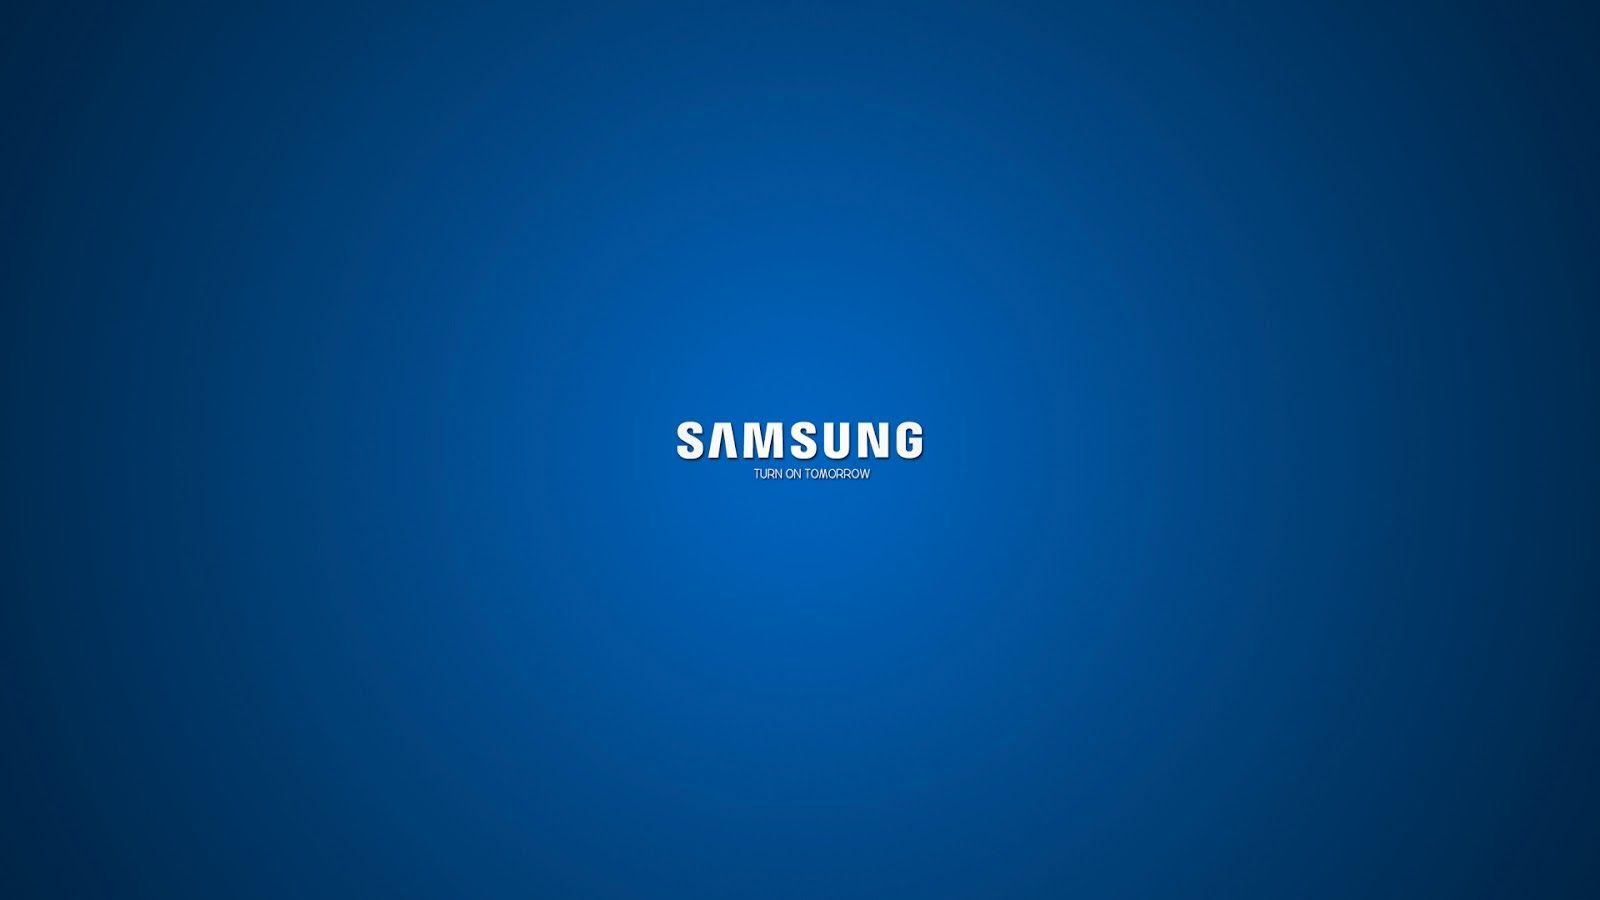 Download 770 Wallpaper Animasi Samsung HD Gratid